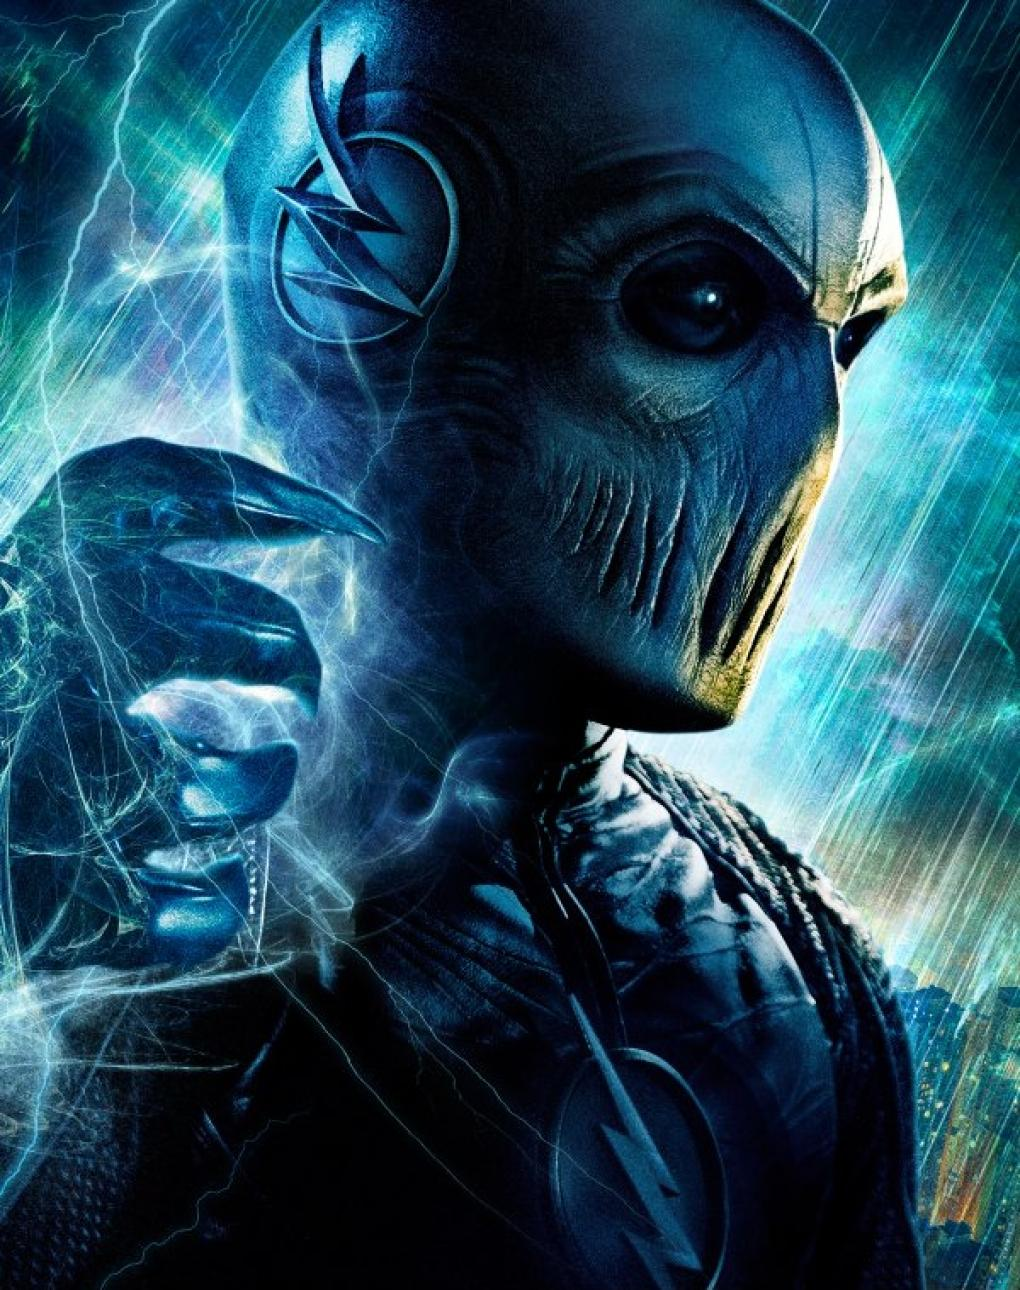 The Flash poster Zoom poster